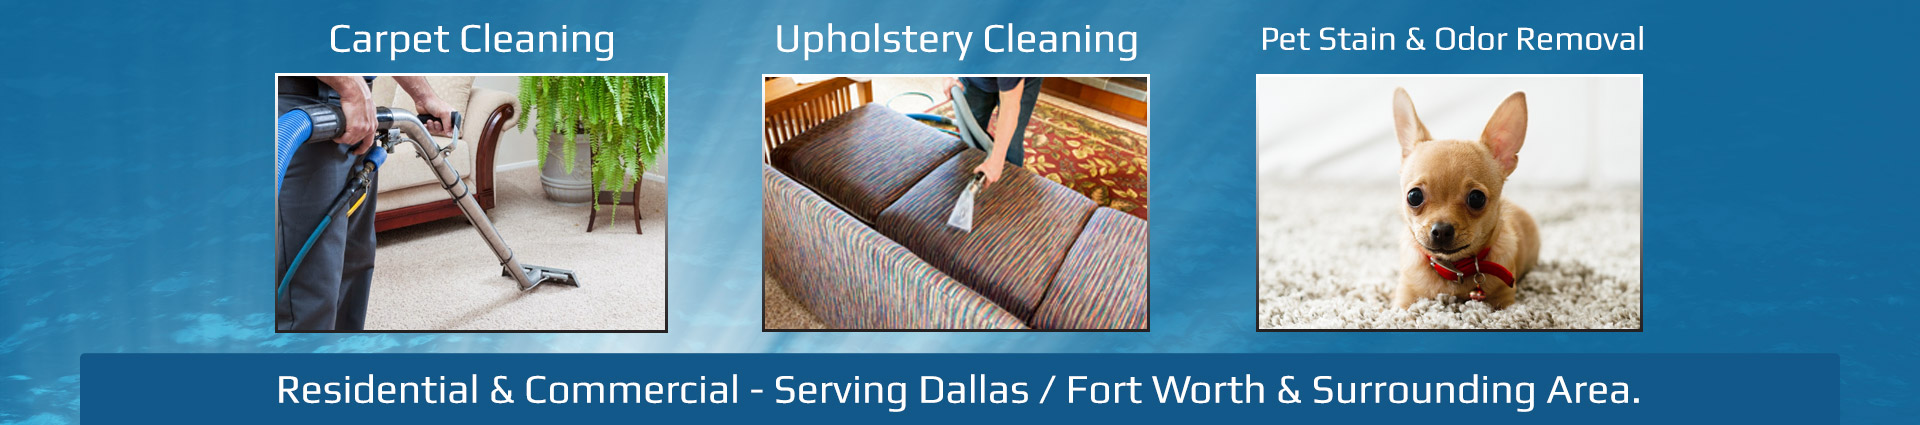 Carpet Cleaning, Upholstery Cleaning, Pet Odor Removal Fort Worth TX